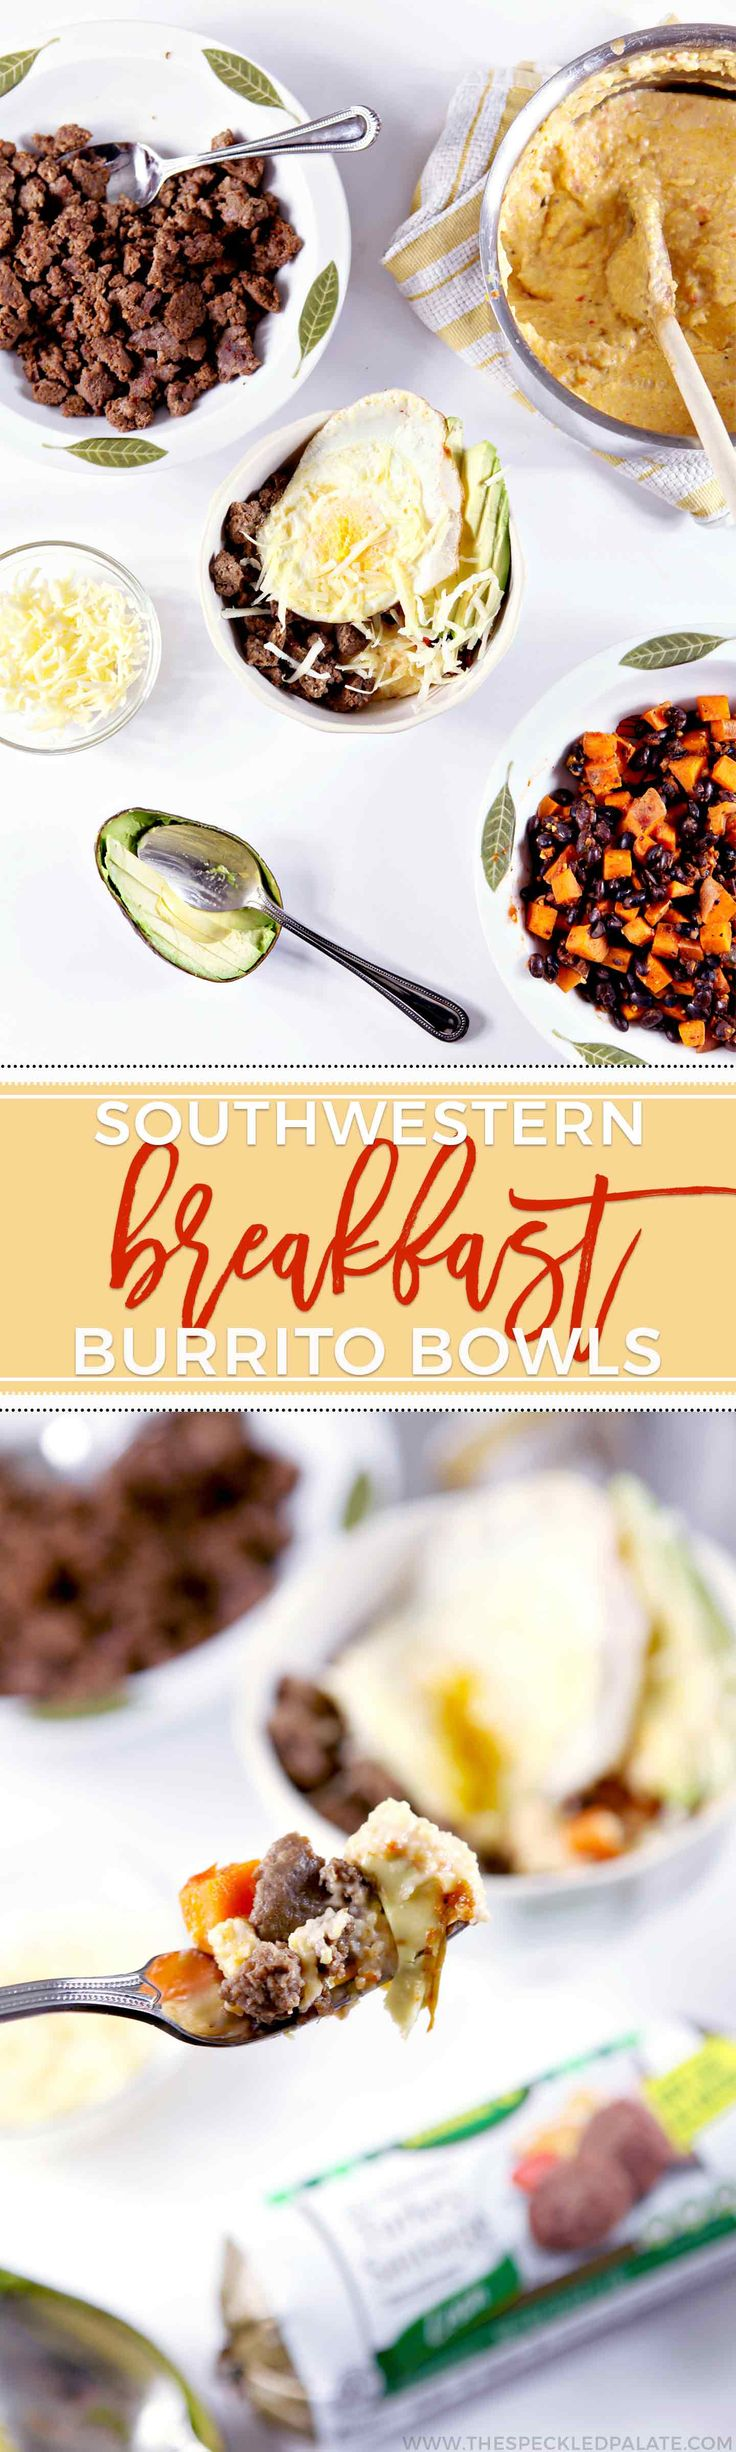 Start the morning with Southwestern Breakfast Burrito Bowls! Breakfast doesn't have to be boring... and a burrito bowl serves as a blast of flavor. #ad #JennieO #SwitchCircle